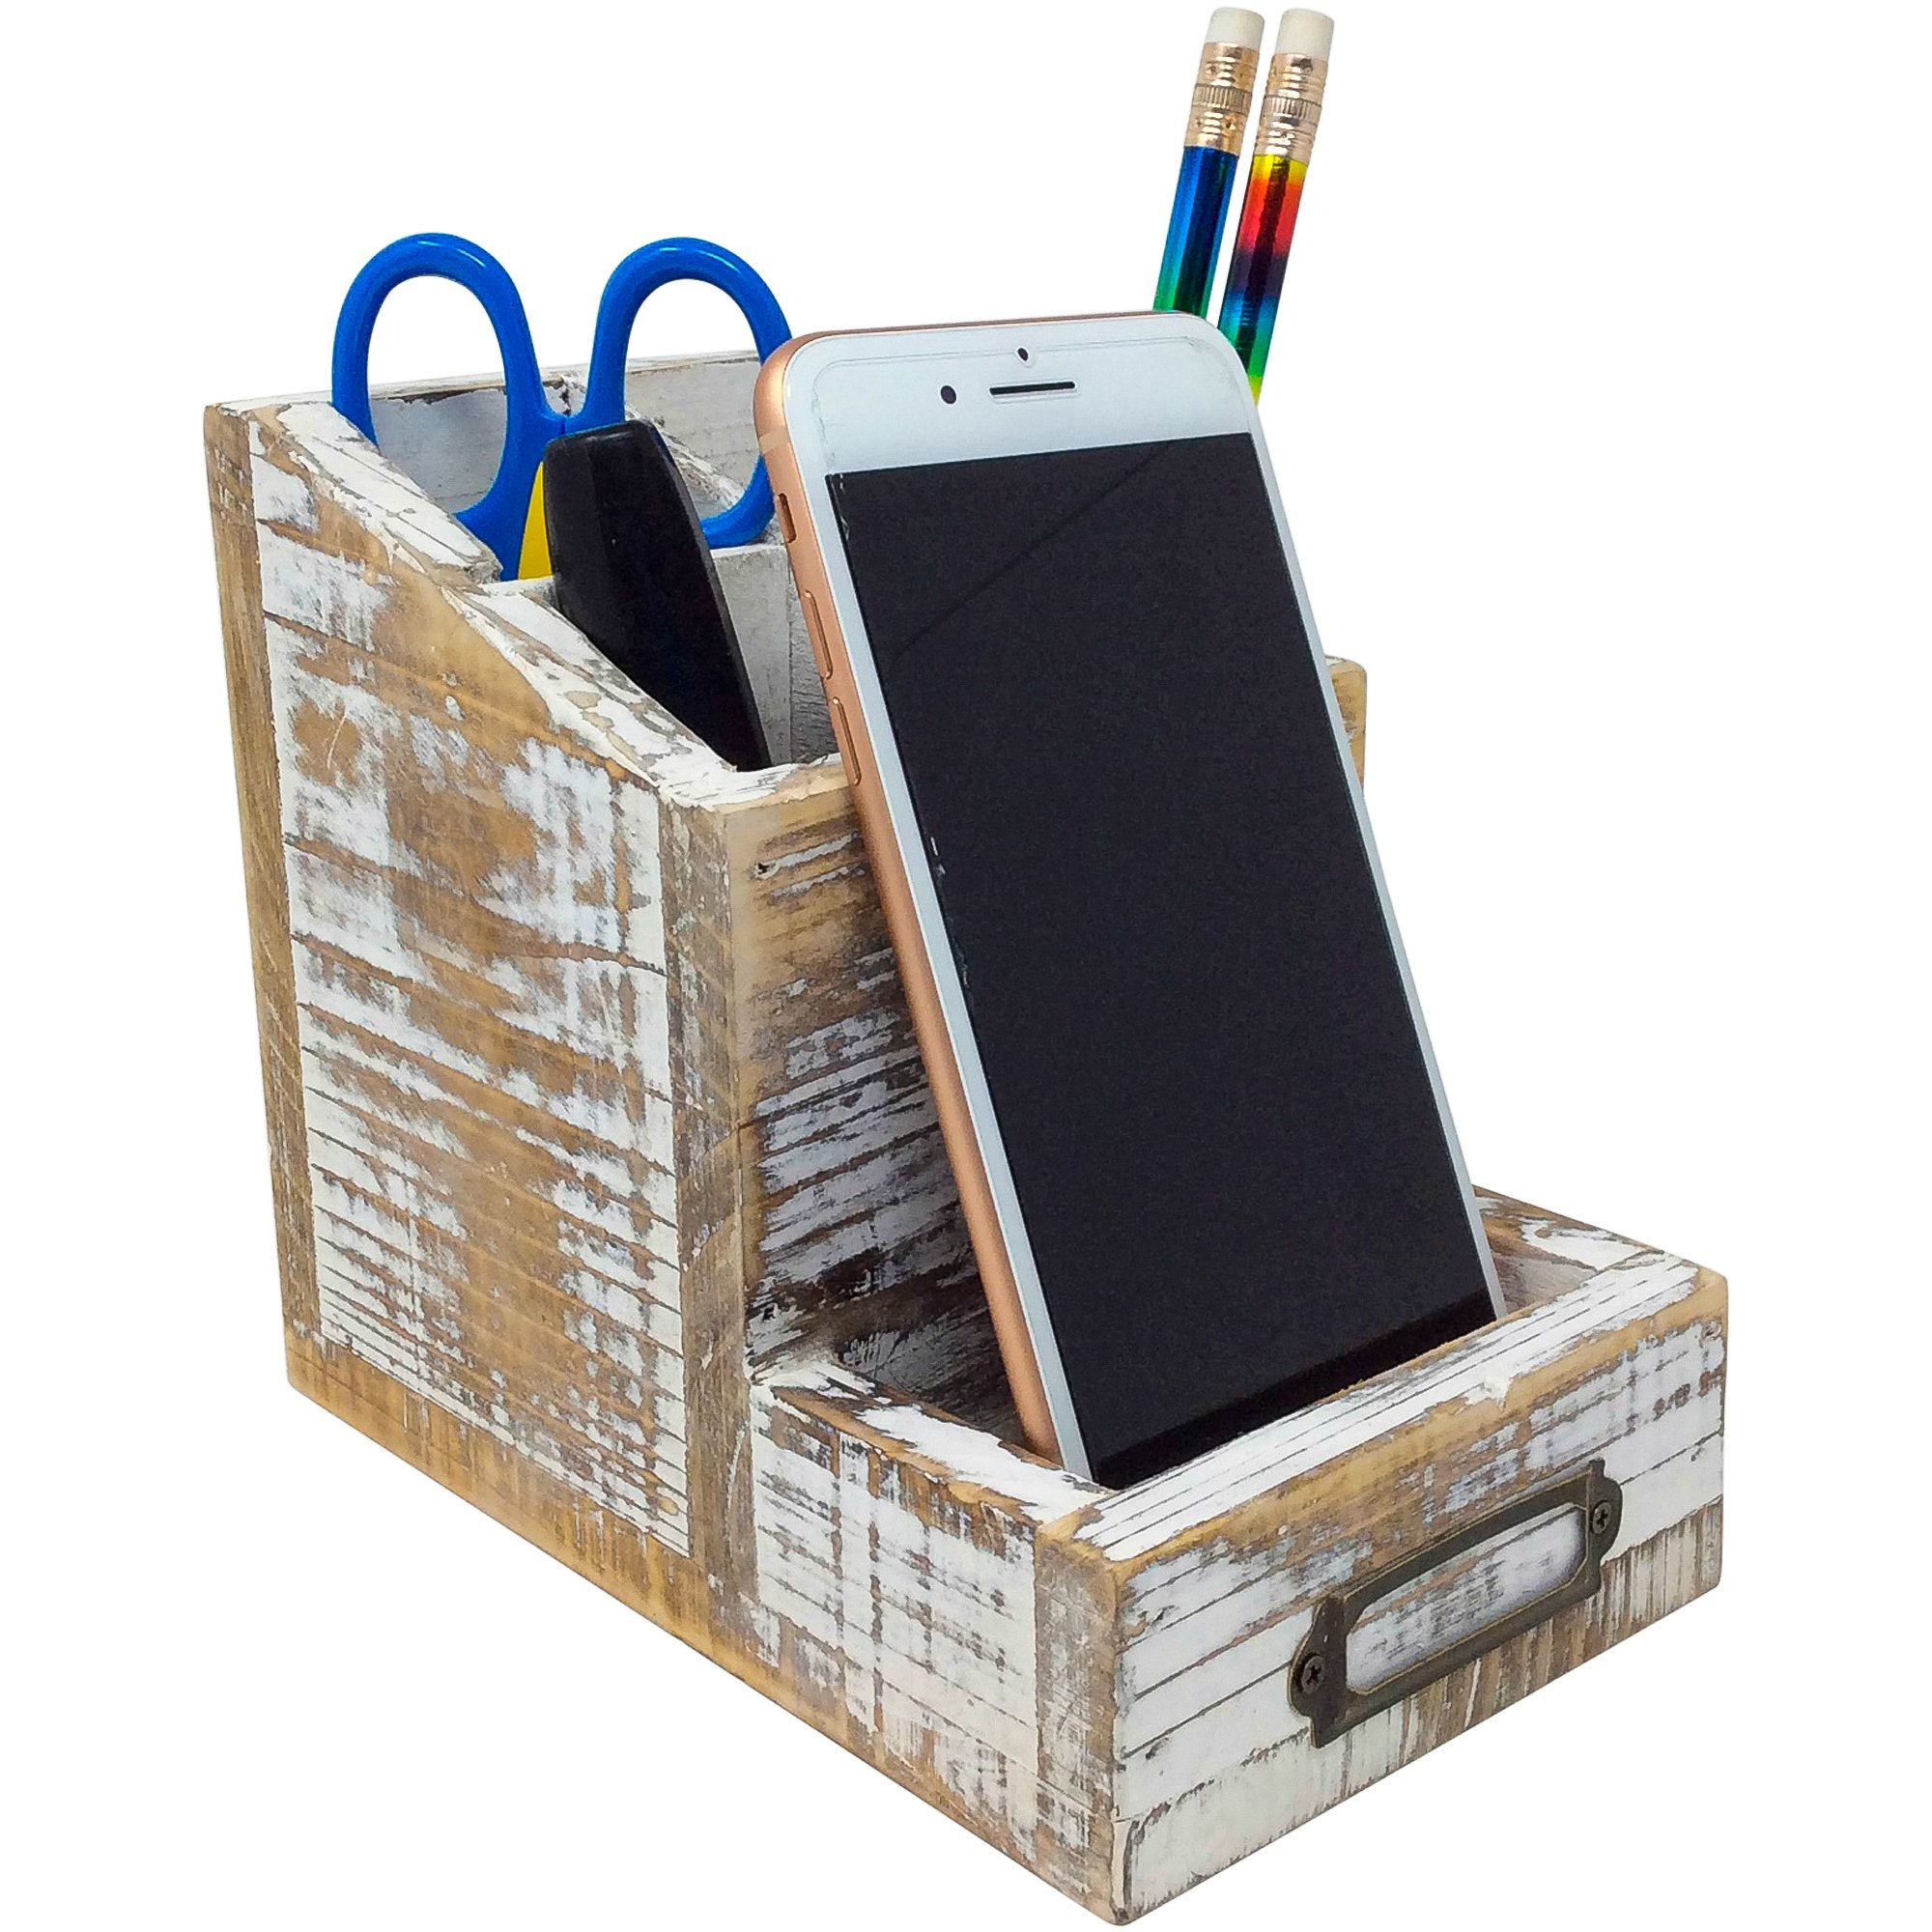 Rusoji Country Rustic Torched Wood Cell Phone Stand and 4 Slots Pen Pencil Holder Office Supply Storage Organizer with Label Holder, Brown